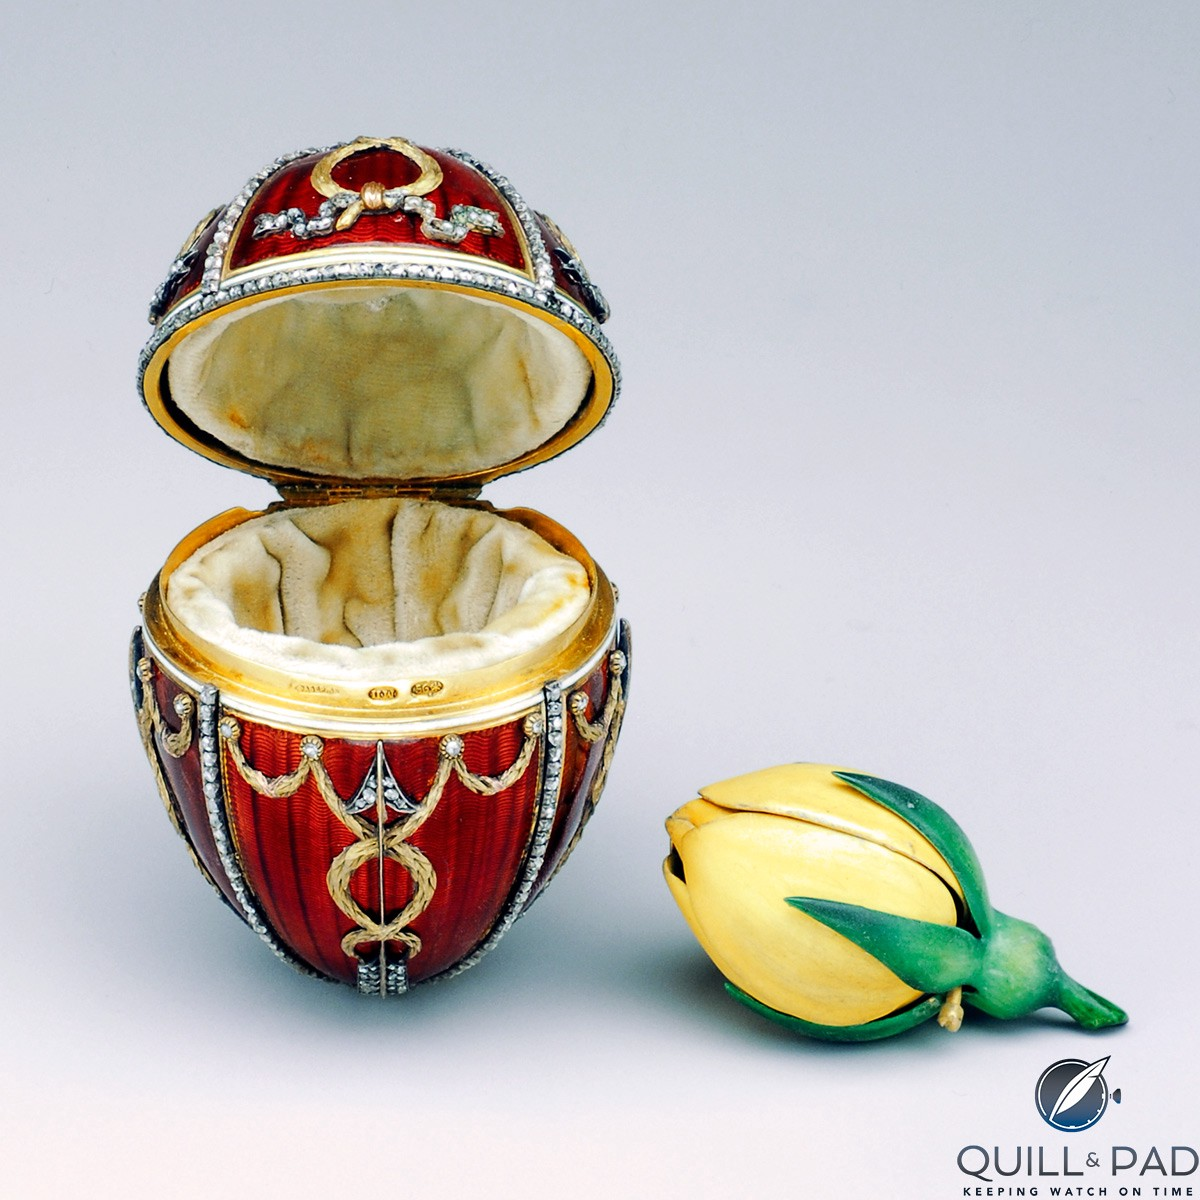 The Fabergé Rosebud Egg from 1895 (photo courtesy The Forbes Collection)